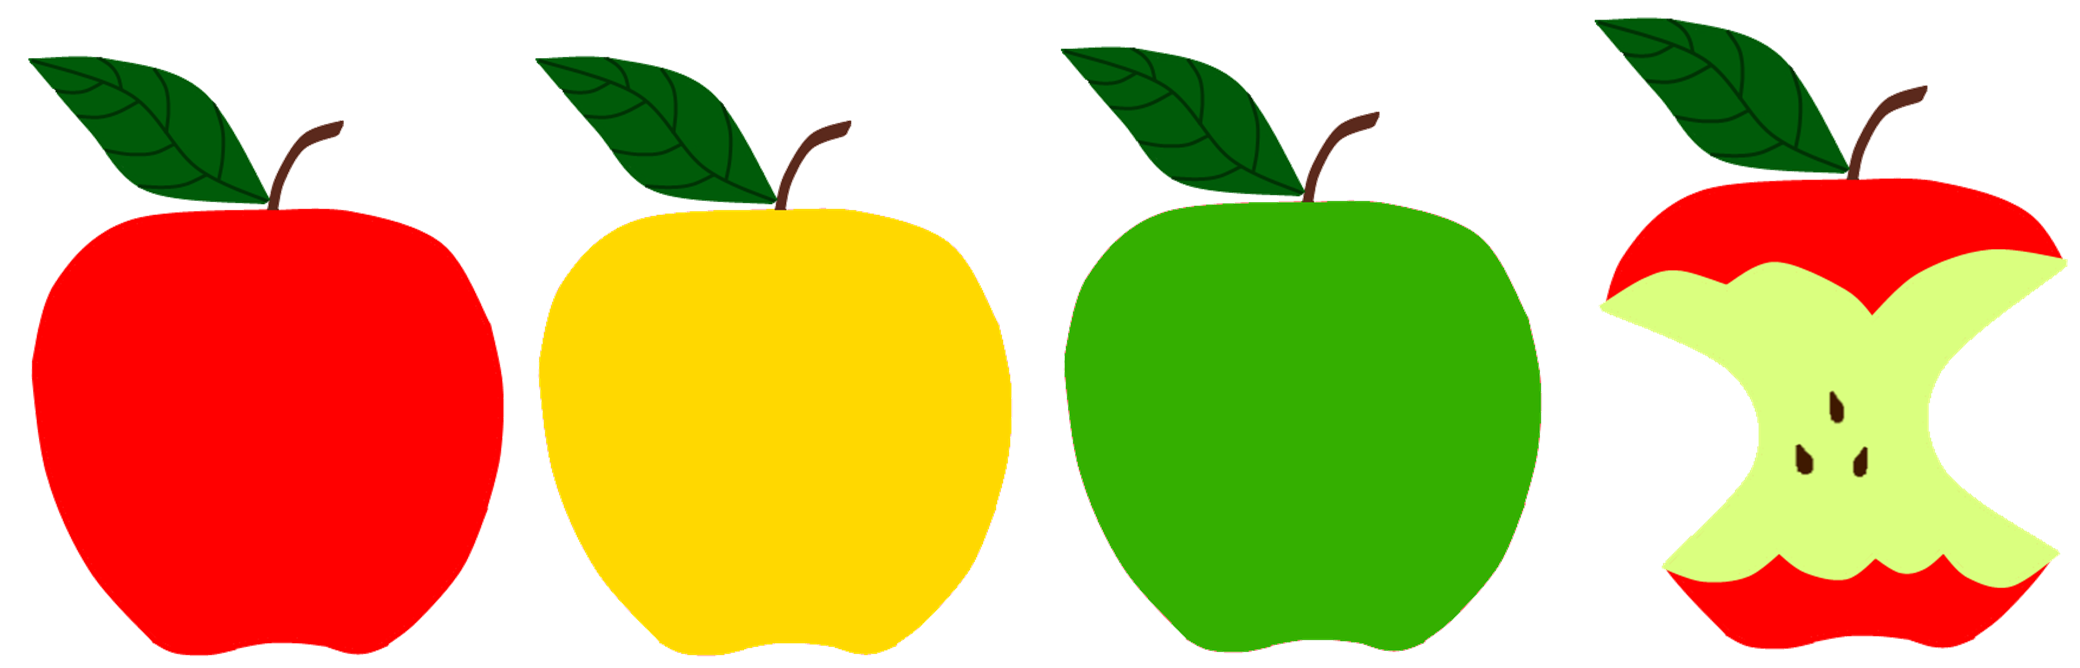 Free clipart apple picking graphic transparent Apples | Sunflower Storytime graphic transparent